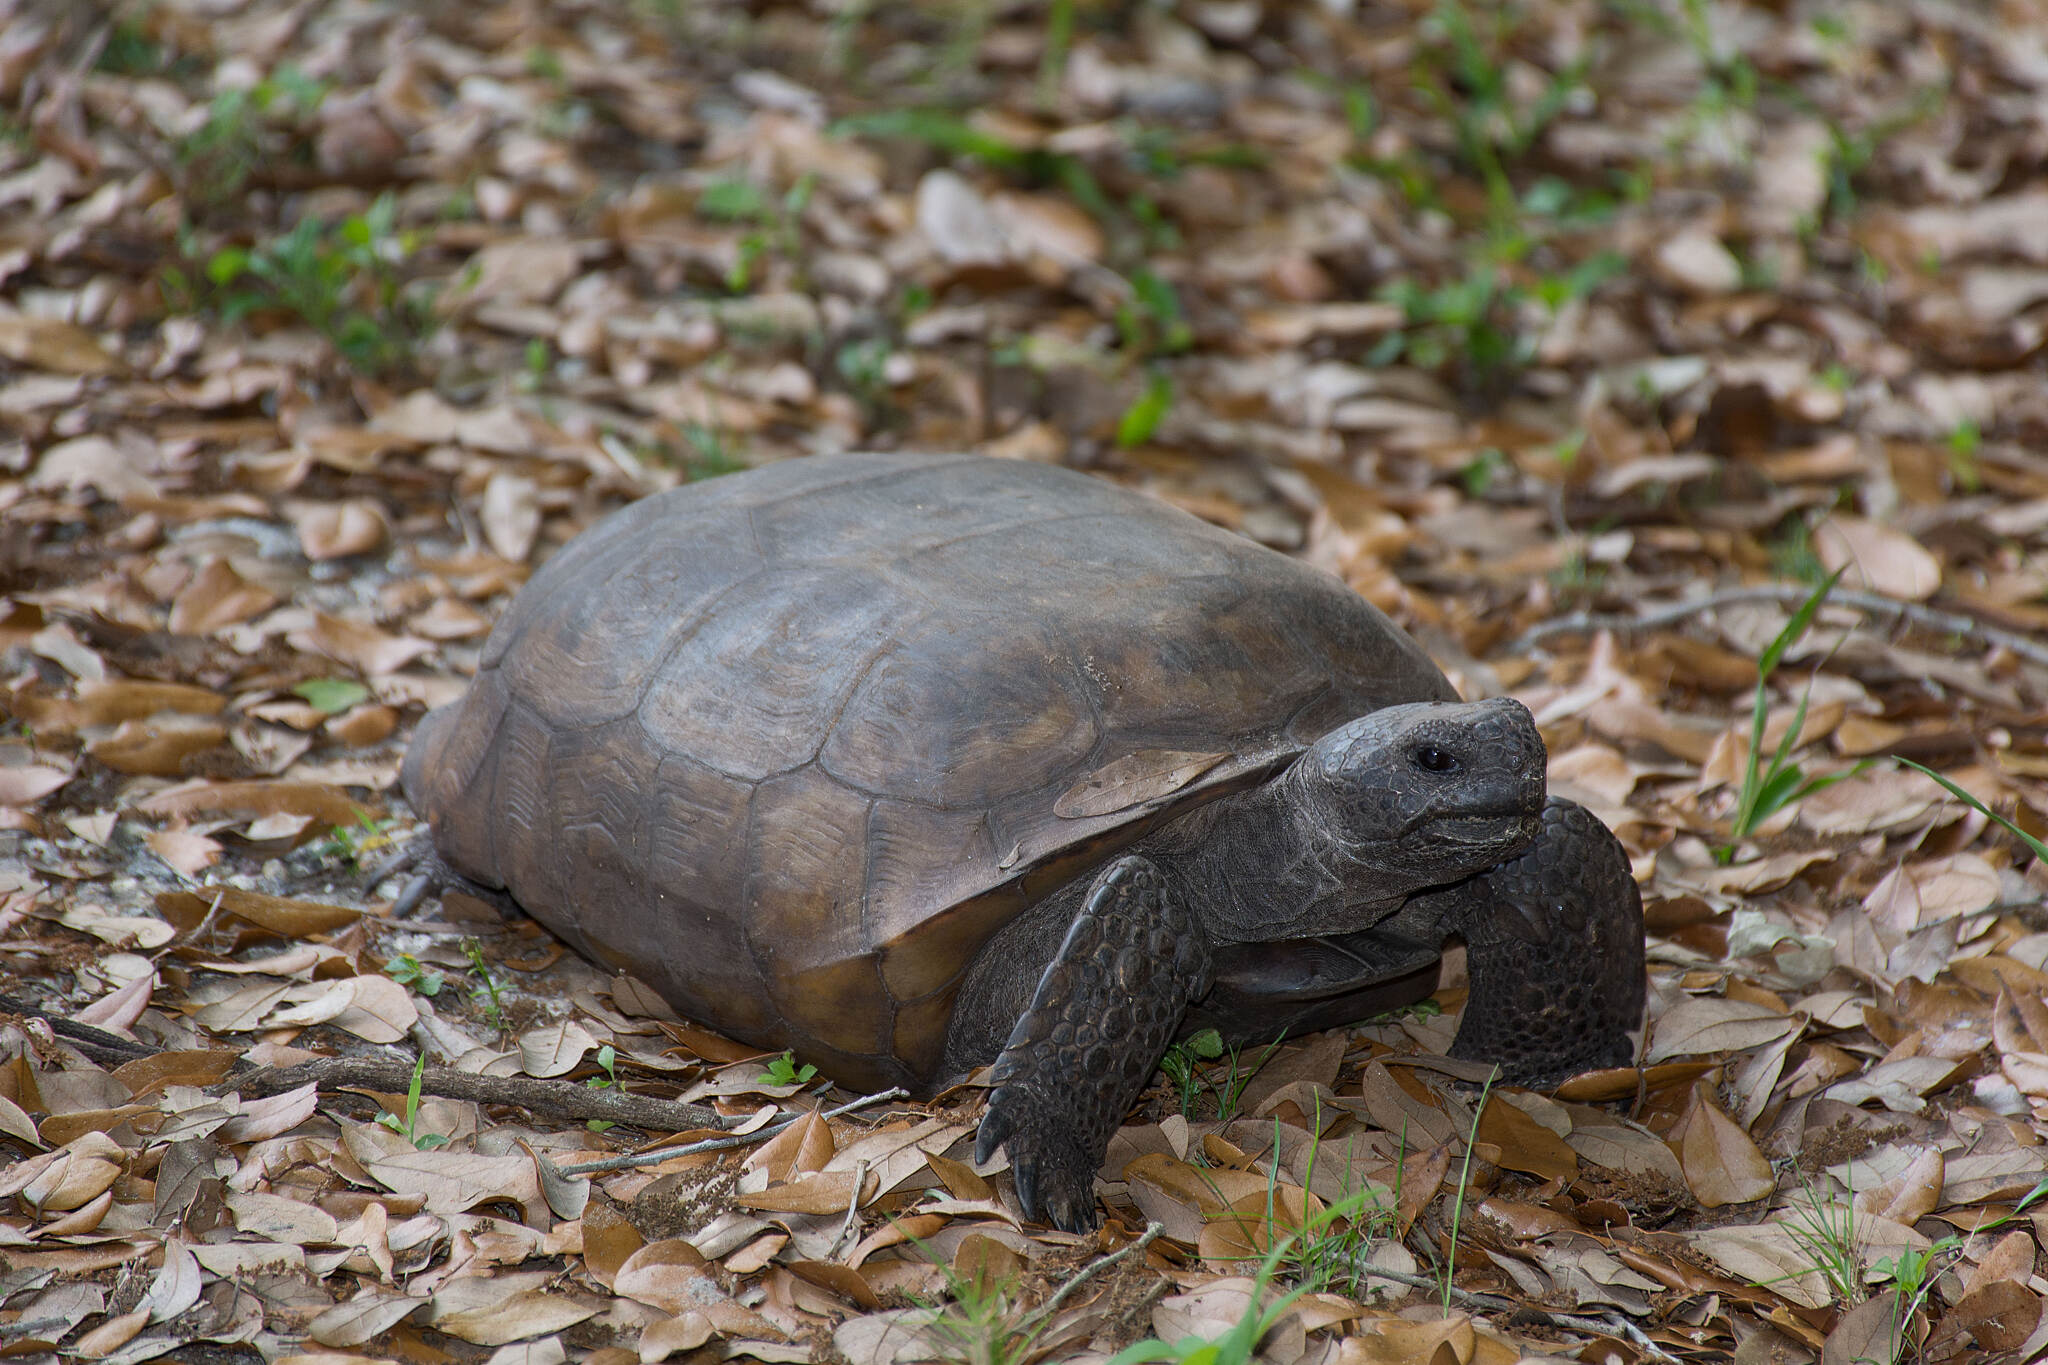 Legacy Trail (FL) Gopher Tortoise Walking along next to trail asphalt